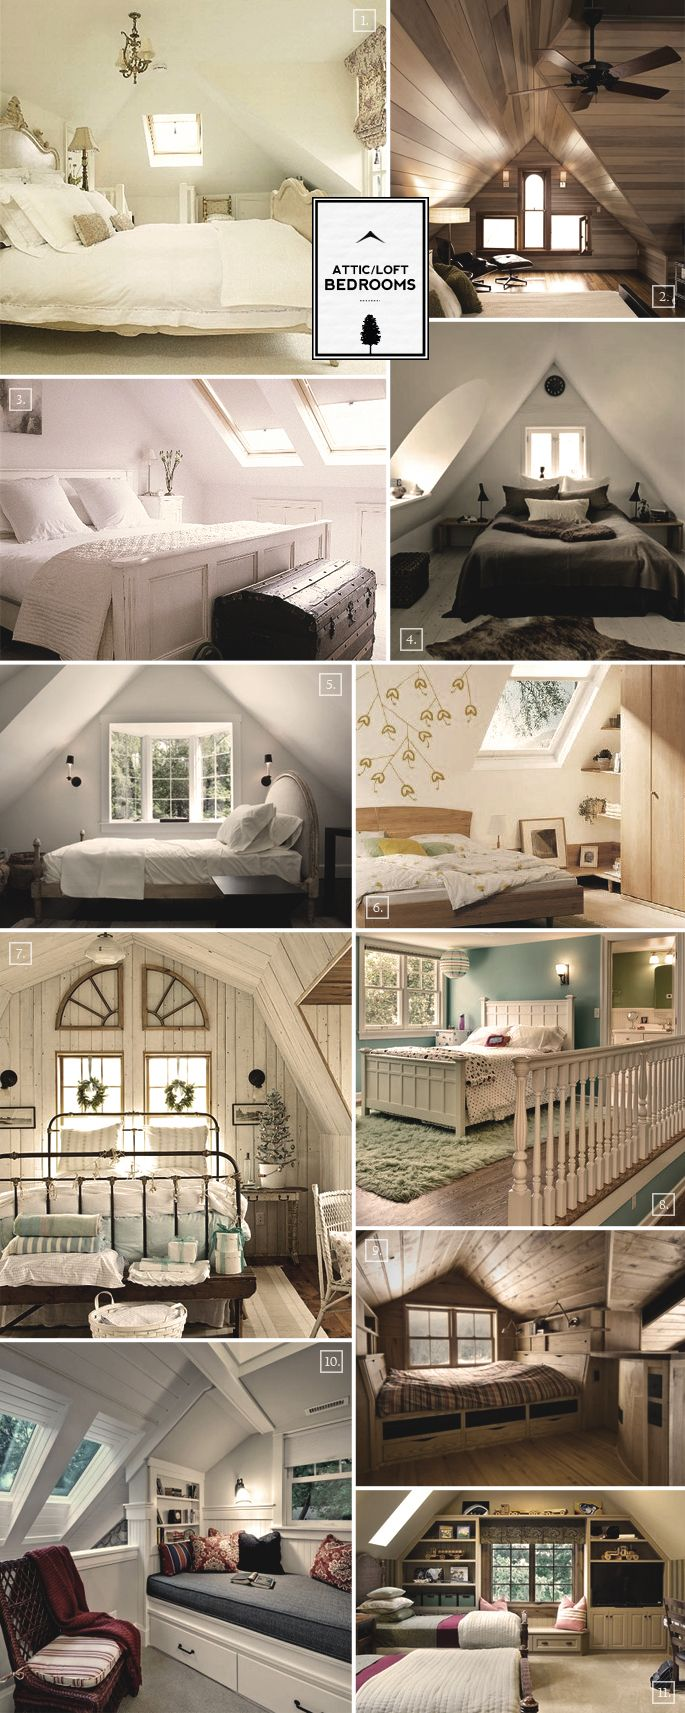 Attic bedroom ideas..